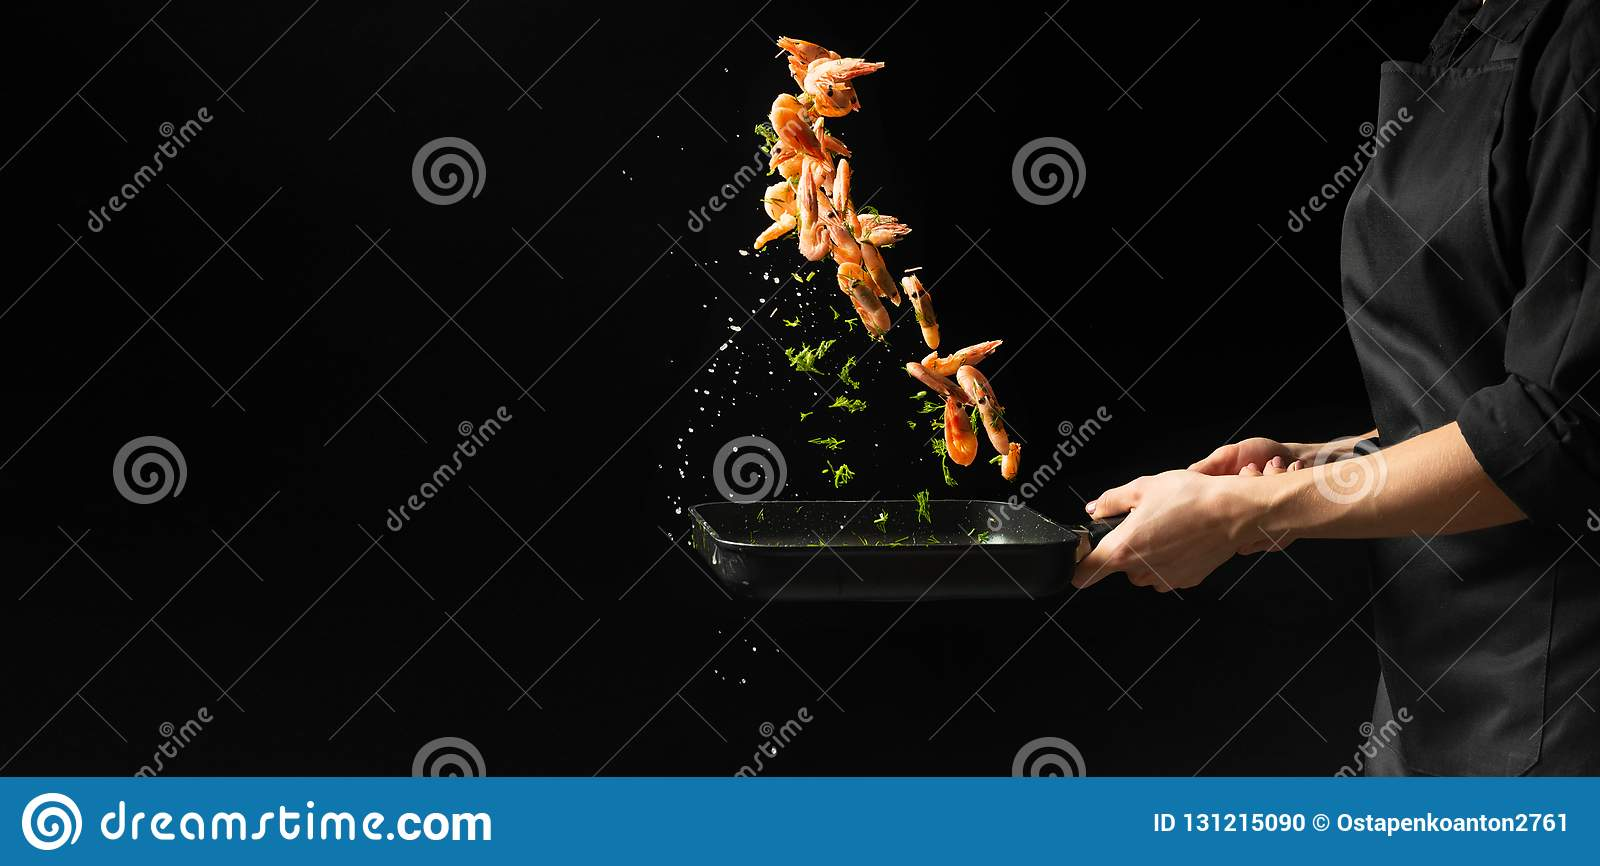 Professional chef prepares shrimps with greens. Cooking seafood, healthy vegetarian food, and food on a dark background. Horizonta